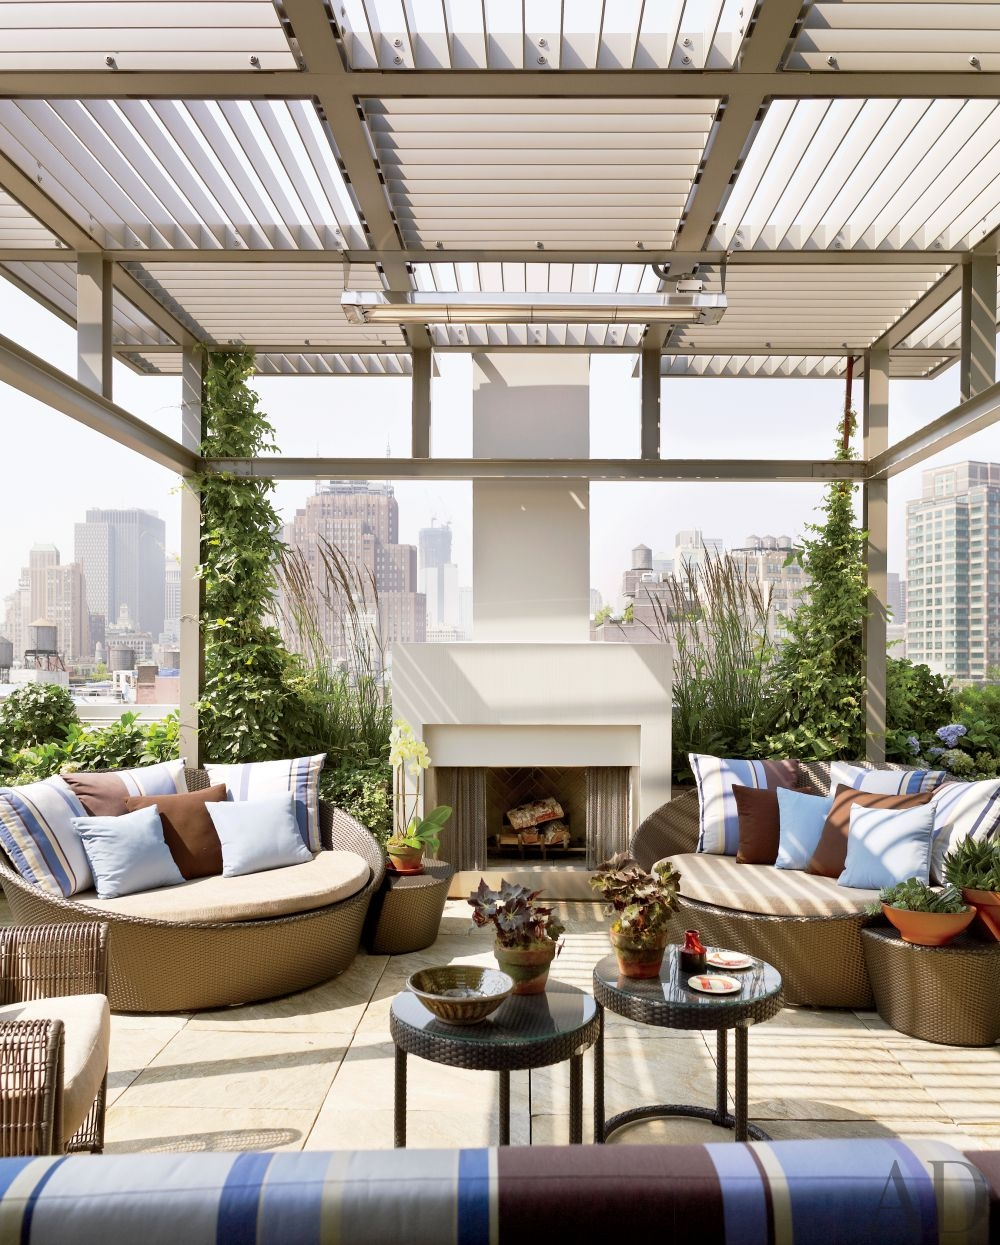 modern-outdoor-space-de-la-torre-design-studio-new-york-new-york